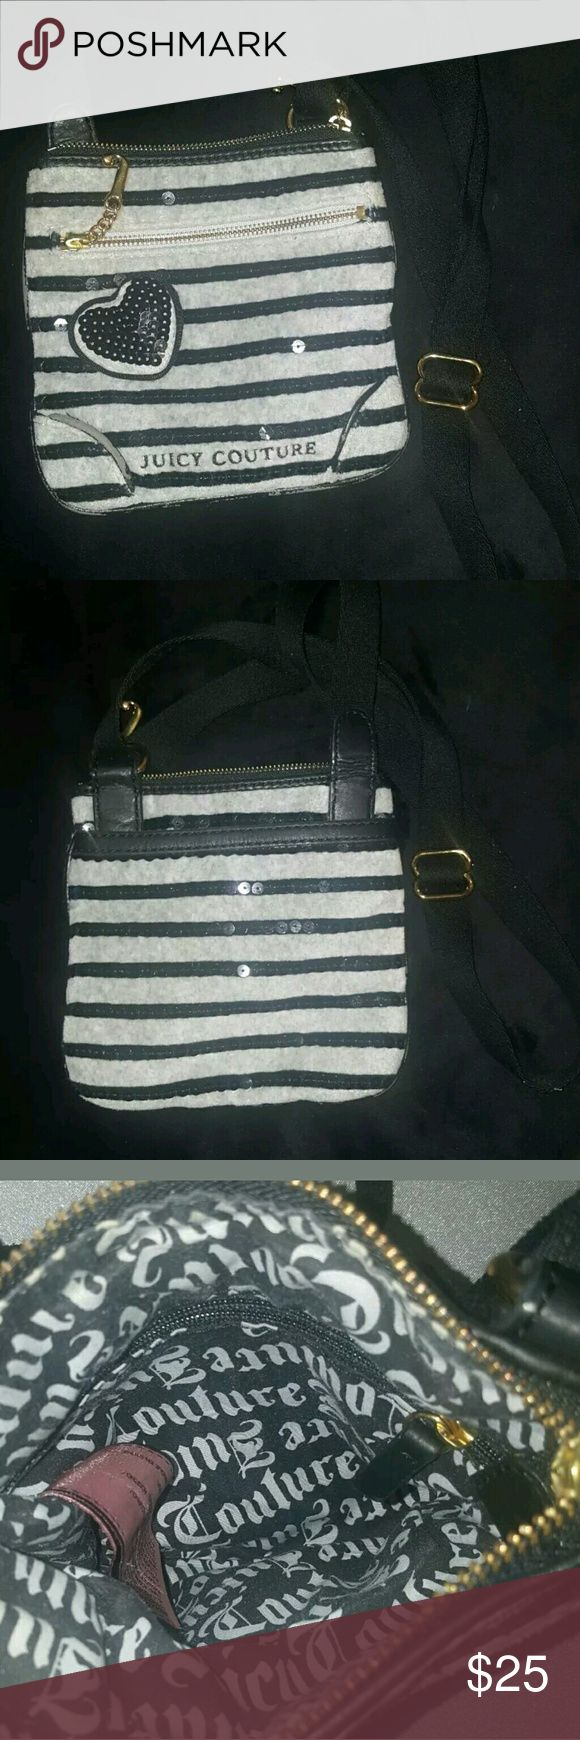 """Juicy Couture Crossbody *Make Offer* Small Purse  Pouch Linned Bag  Striped With Heart and Sequins  Golden Accents  Zipper Shut  Zipper Front Pocket  Open Pocket Back  Small Zipper Pocket Inside   Pre-owned  Used - Minimal Wear   Black, Gray Striped  8""""x8""""x4"""" up to 2' Strap Drop  80% Cotton  20% Polyester  Made in USA Juicy Couture Bags Crossbody Bags"""